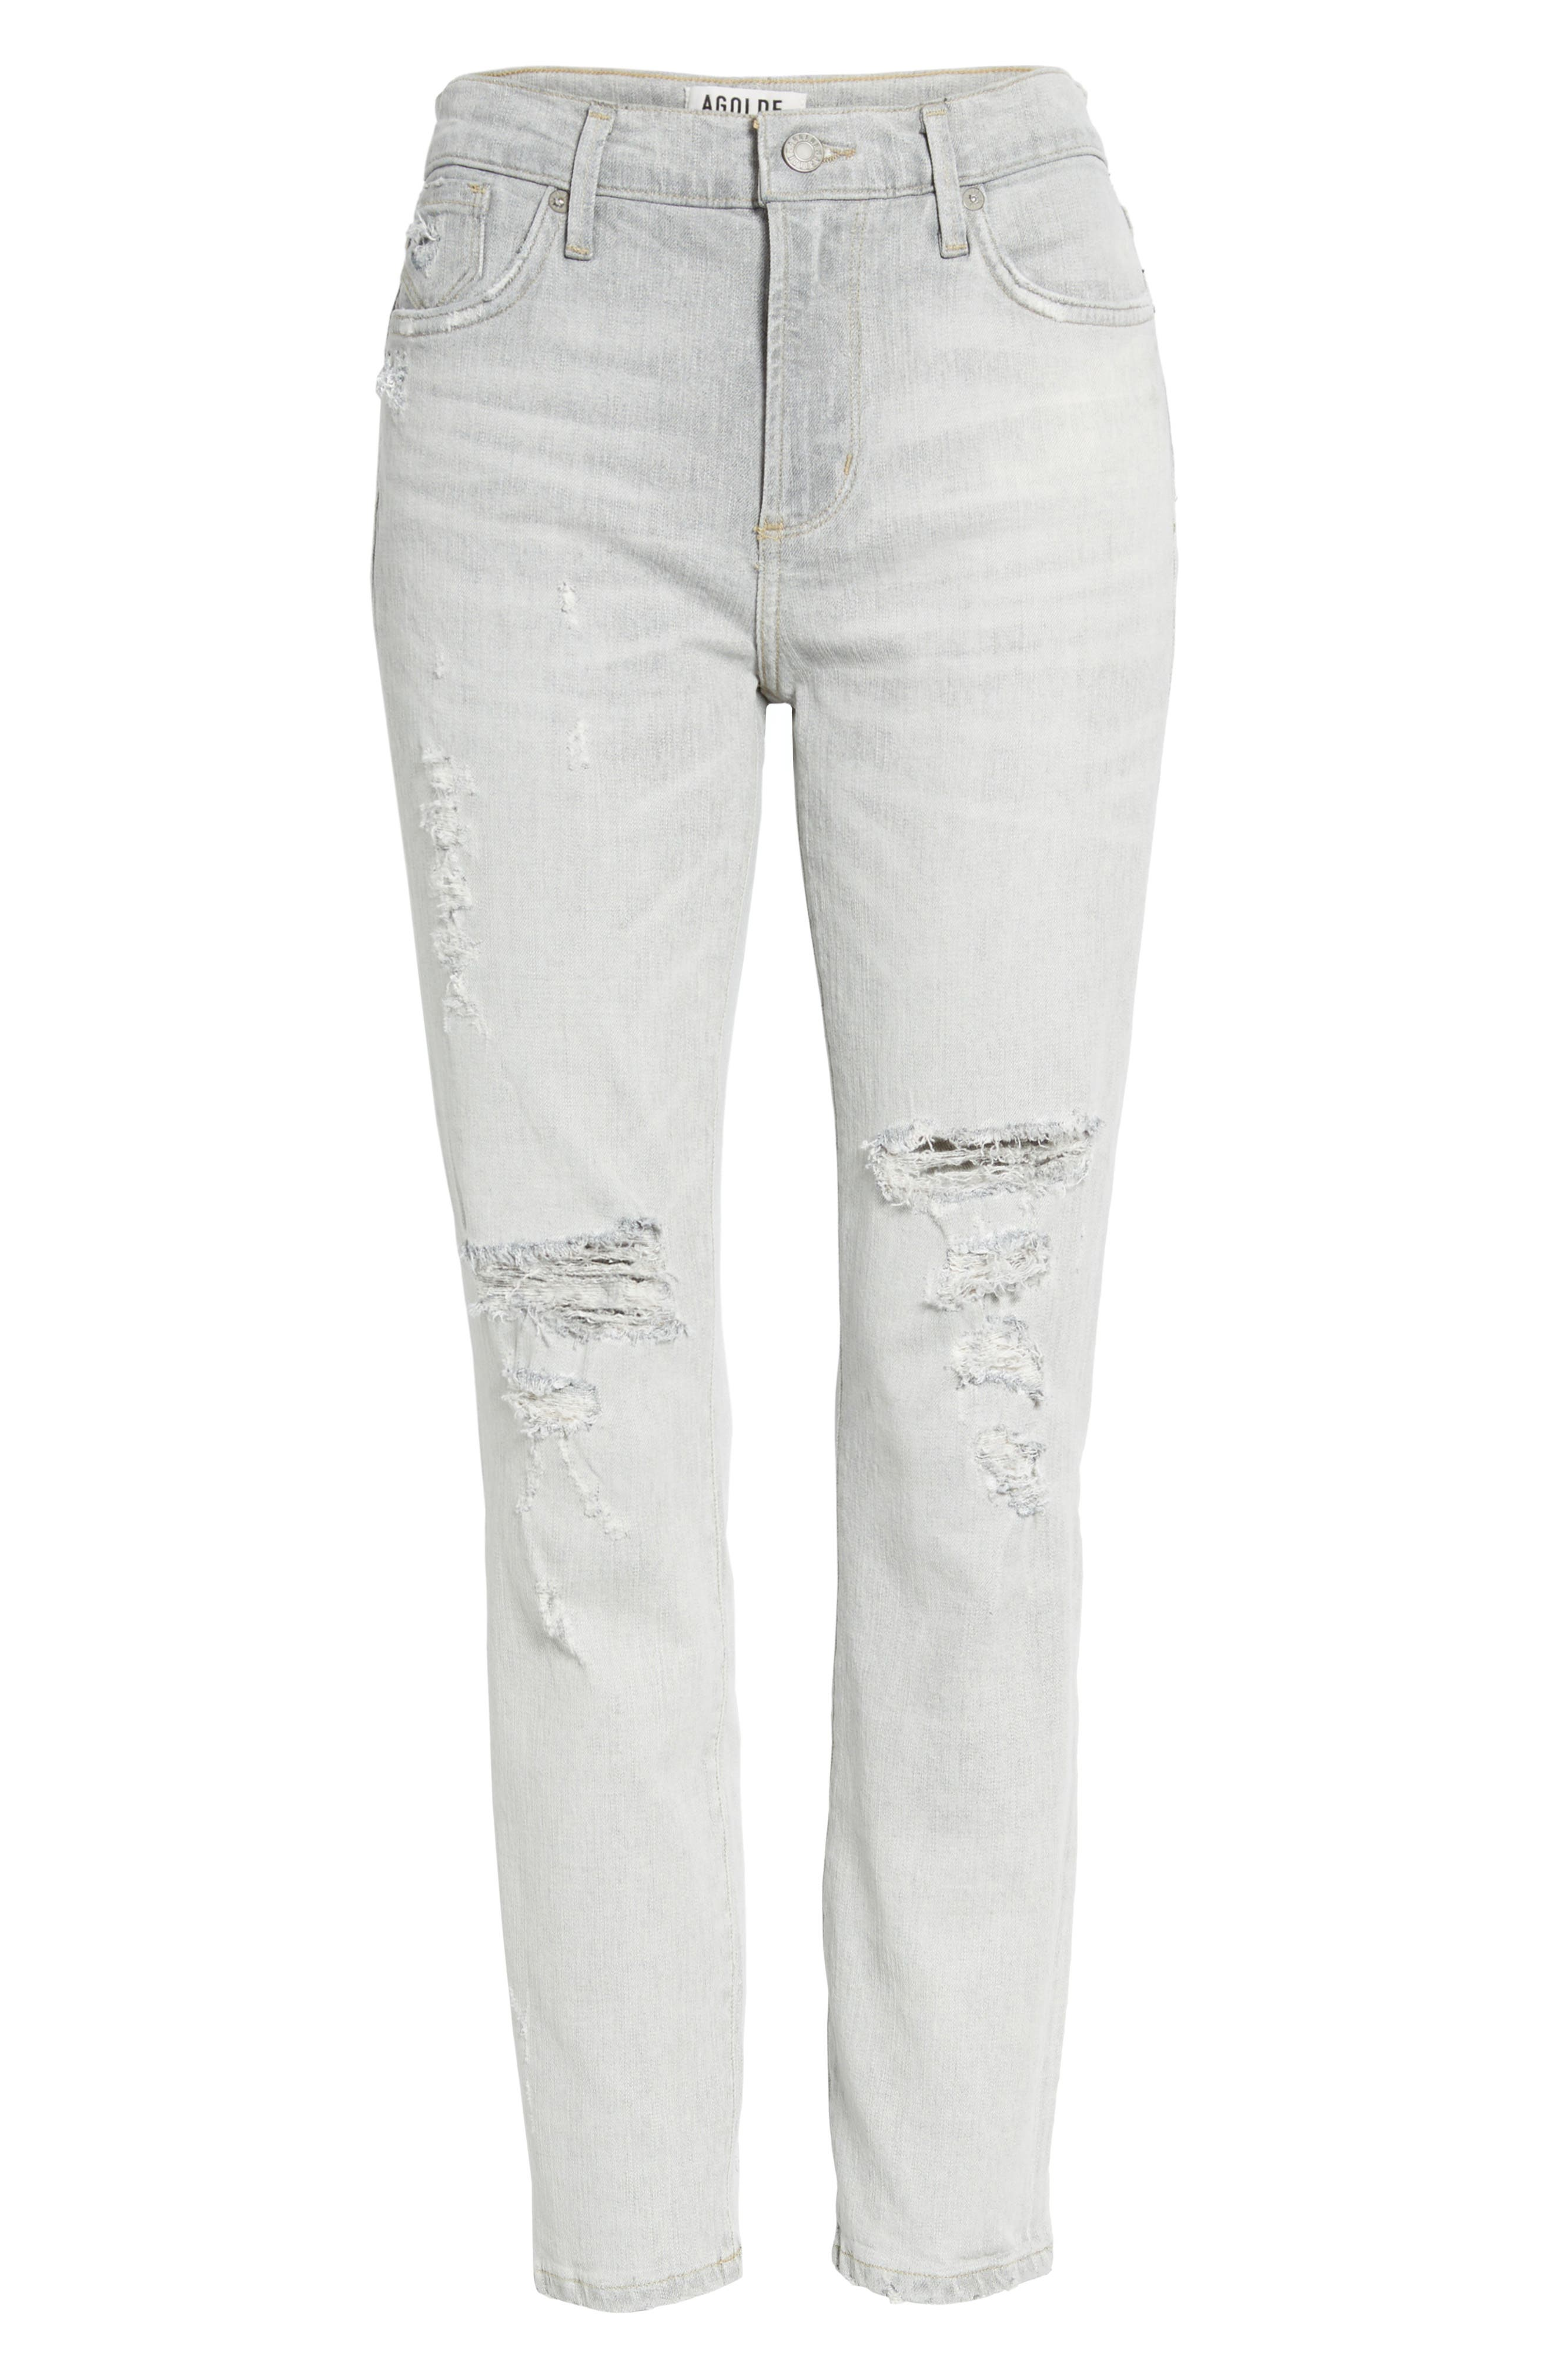 Sophie High Waist Skinny Jeans,                             Alternate thumbnail 7, color,                             059